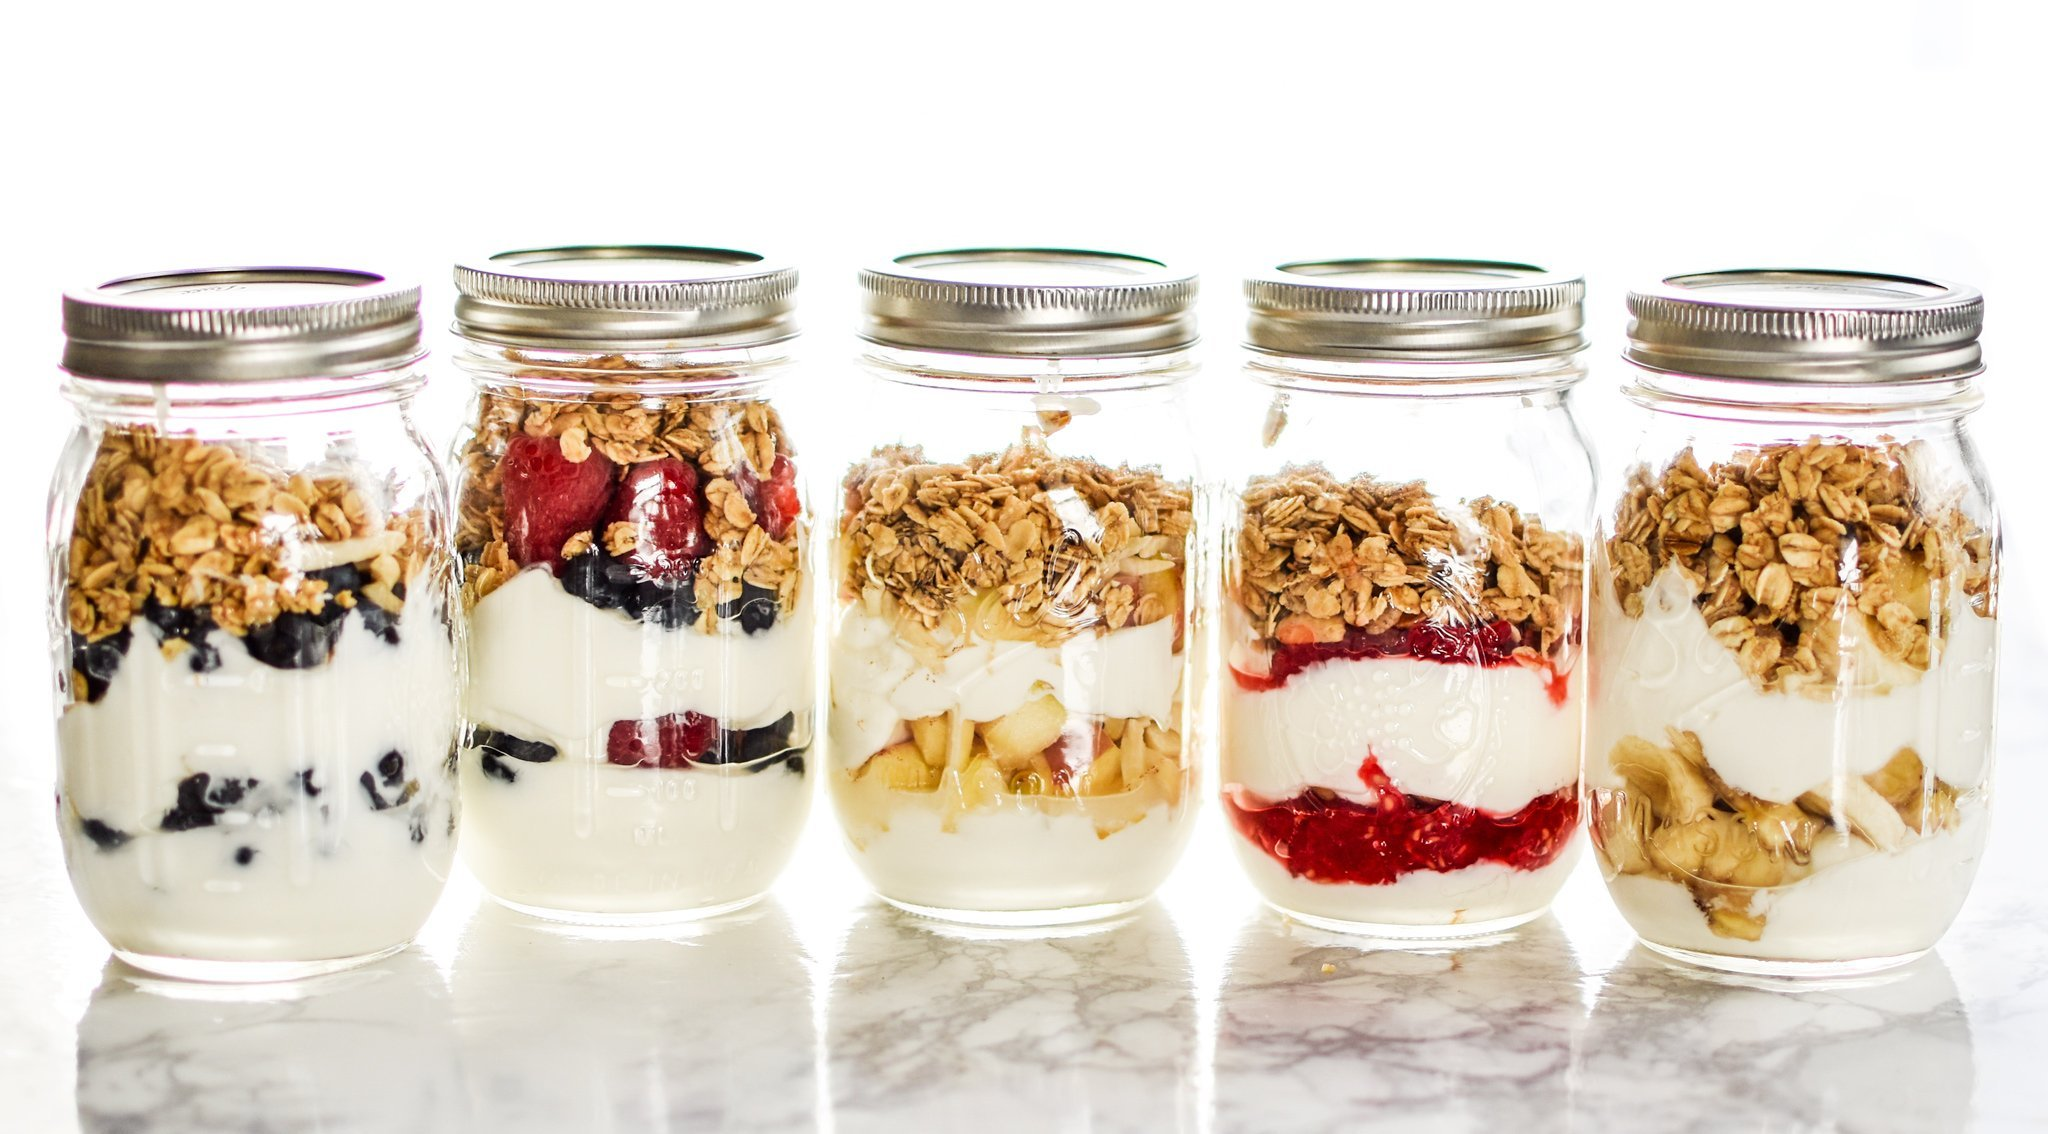 Fruit and greek yogurt parfaits in mason jars.